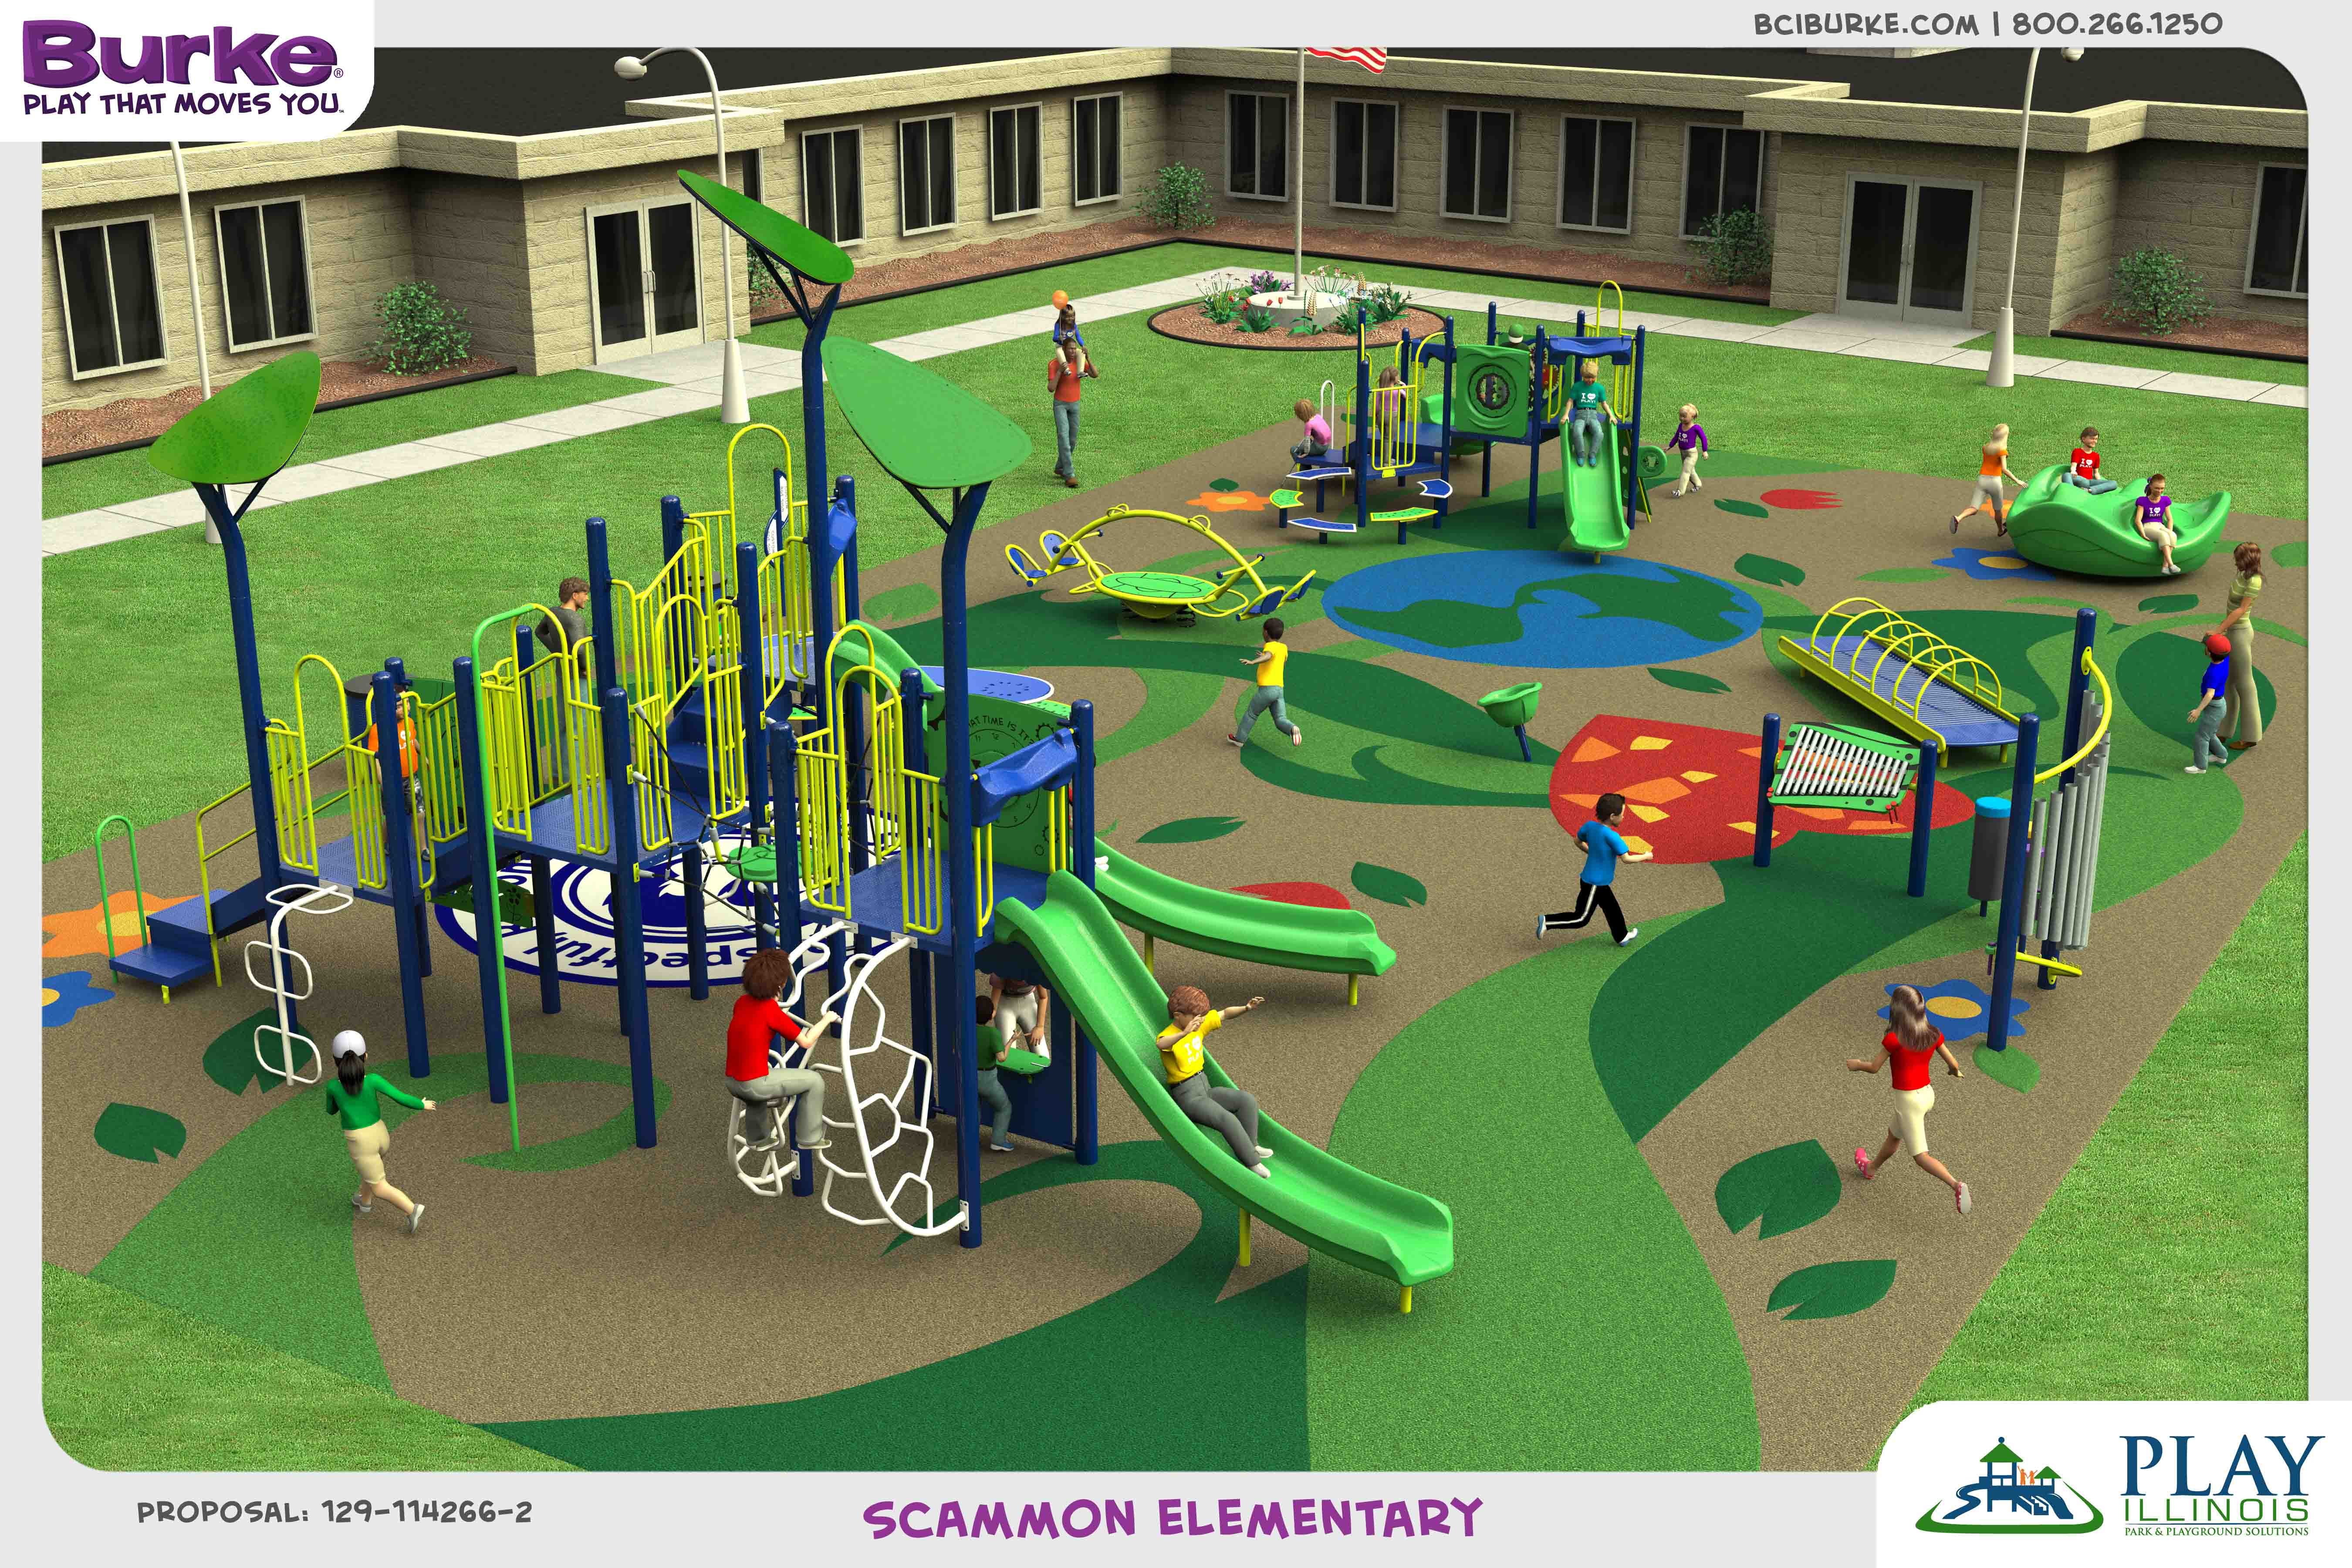 129-114266-2B-copy dream build play experience accessible playgrounds